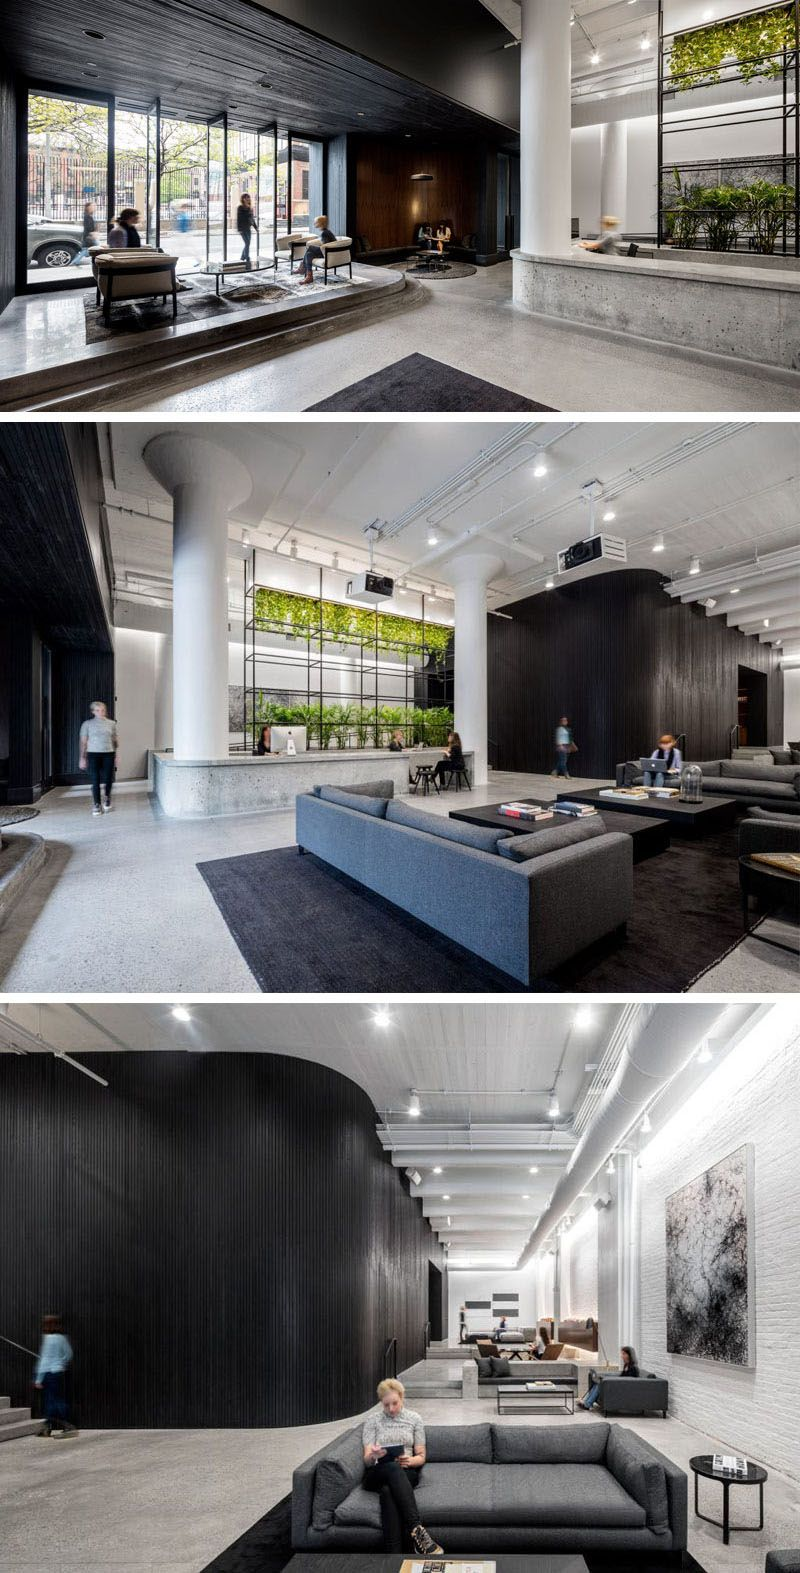 This Office Lobby Is Home To A Concrete Reception Desk With Plant Feature,  And Large Pictures